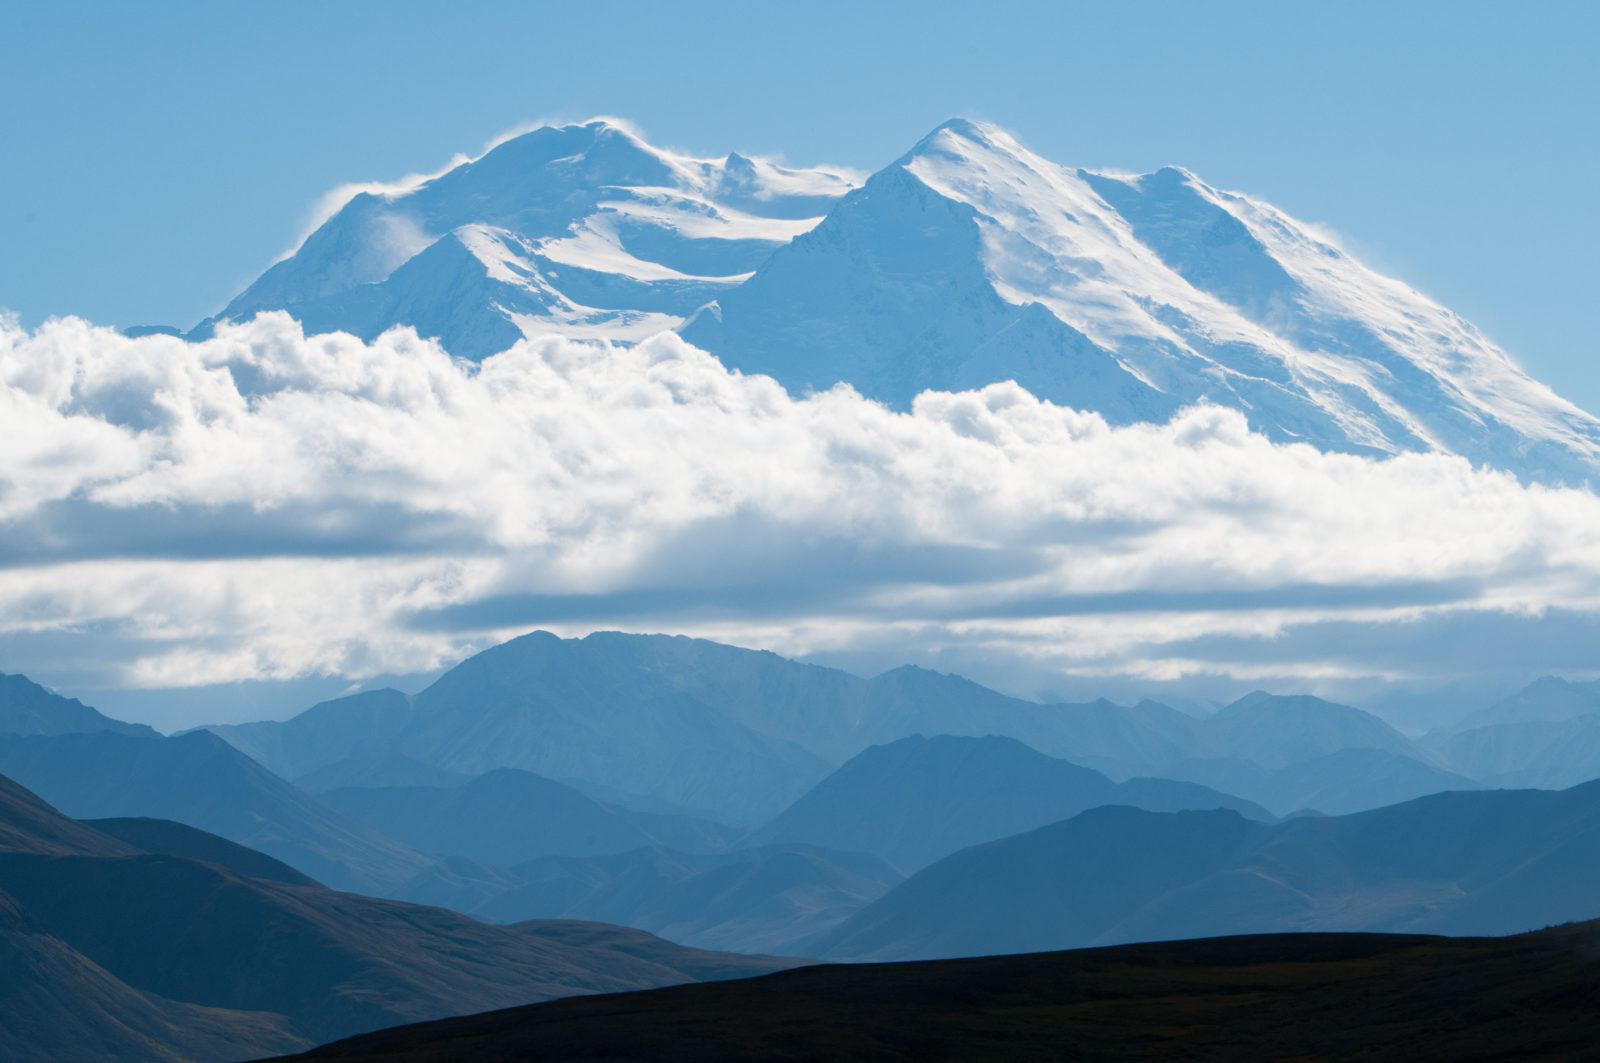 North Face of Denali